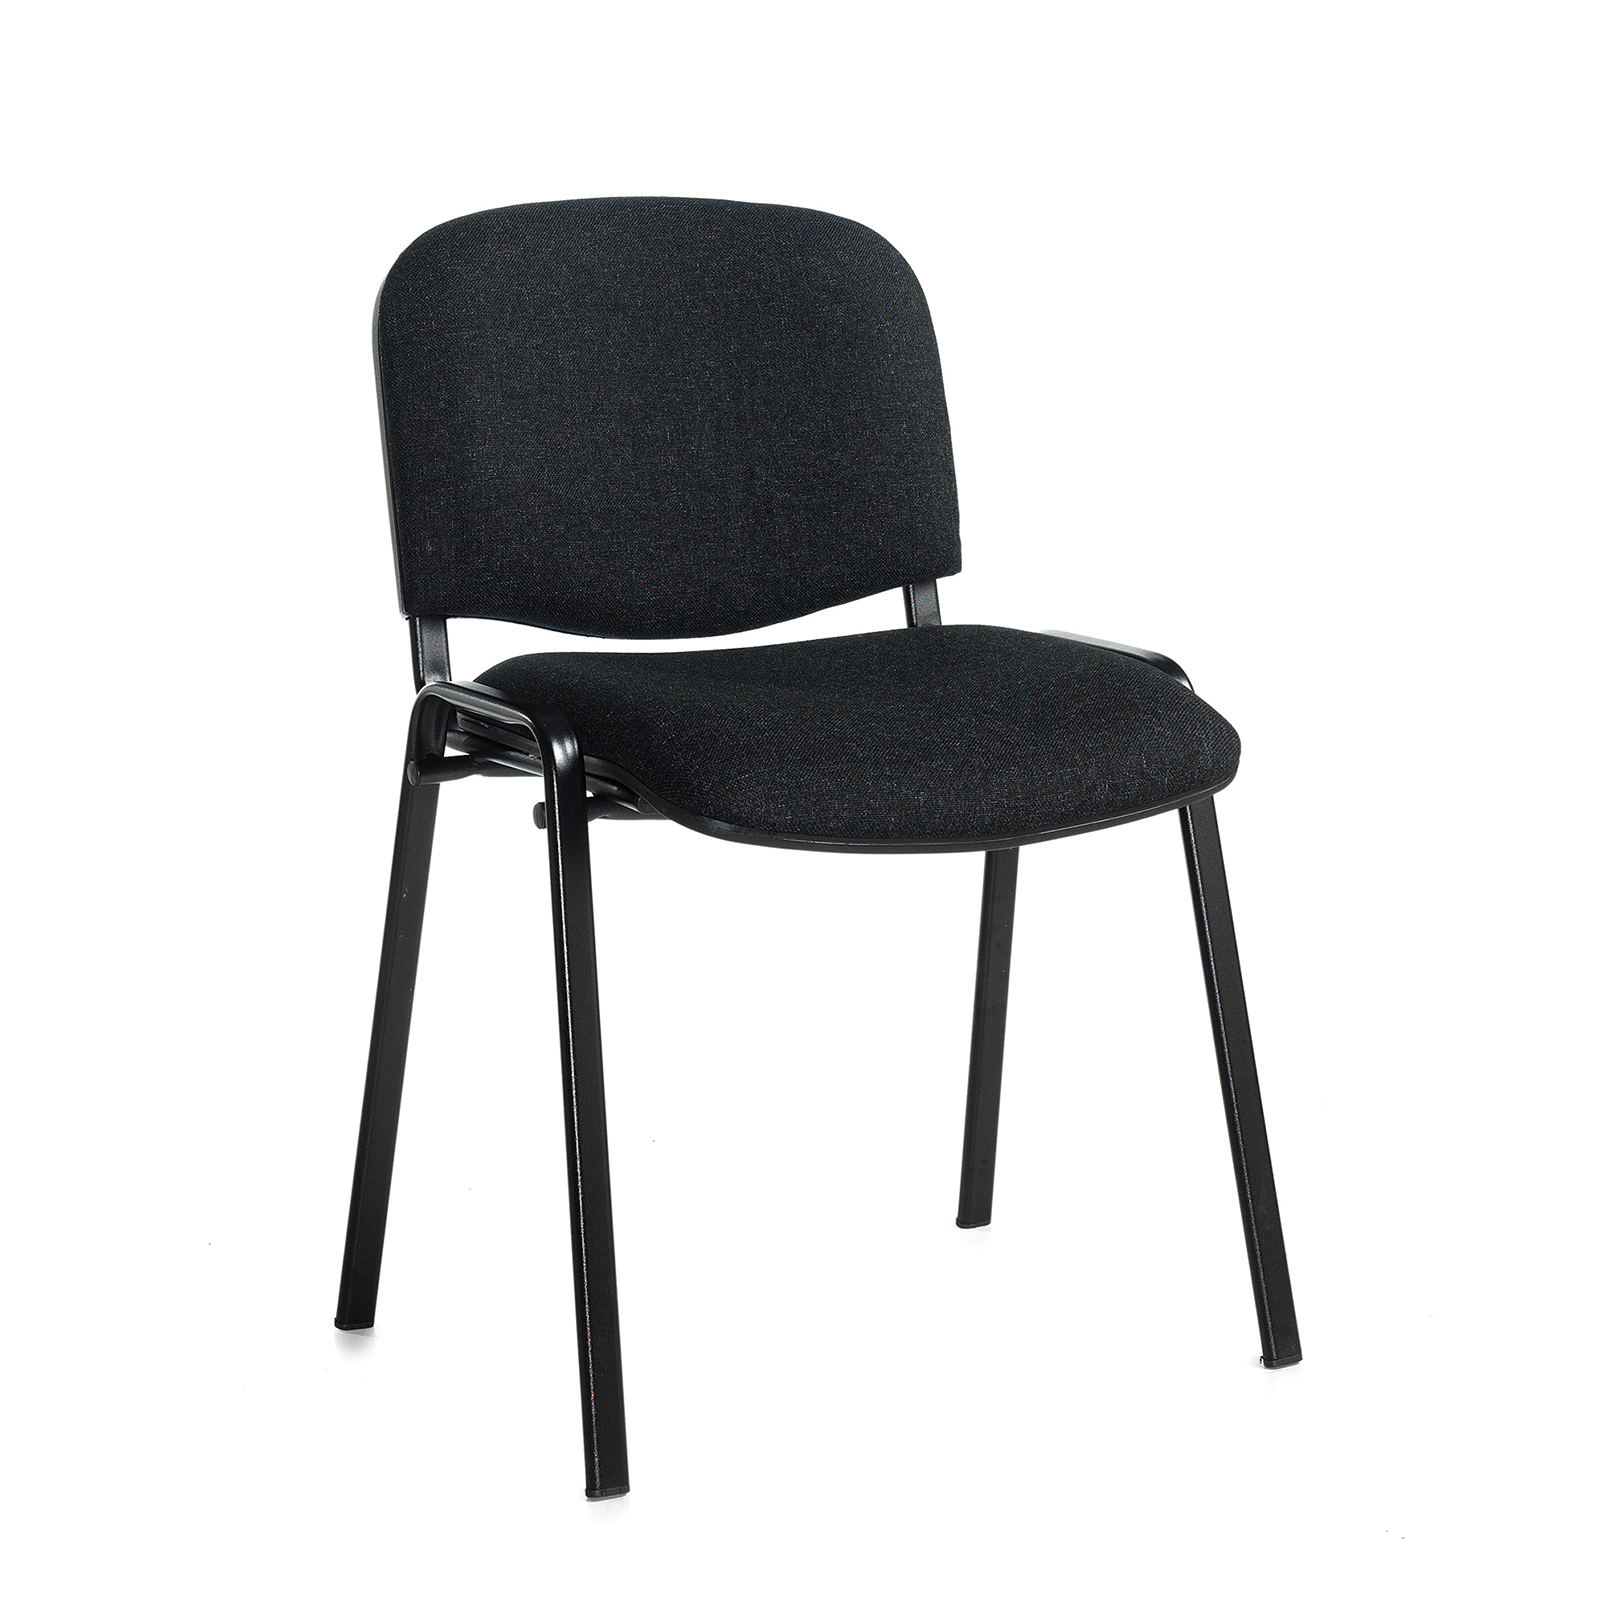 Boardroom / Meeting Taurus meeting room stackable chair with black frame and no arms - charcoal